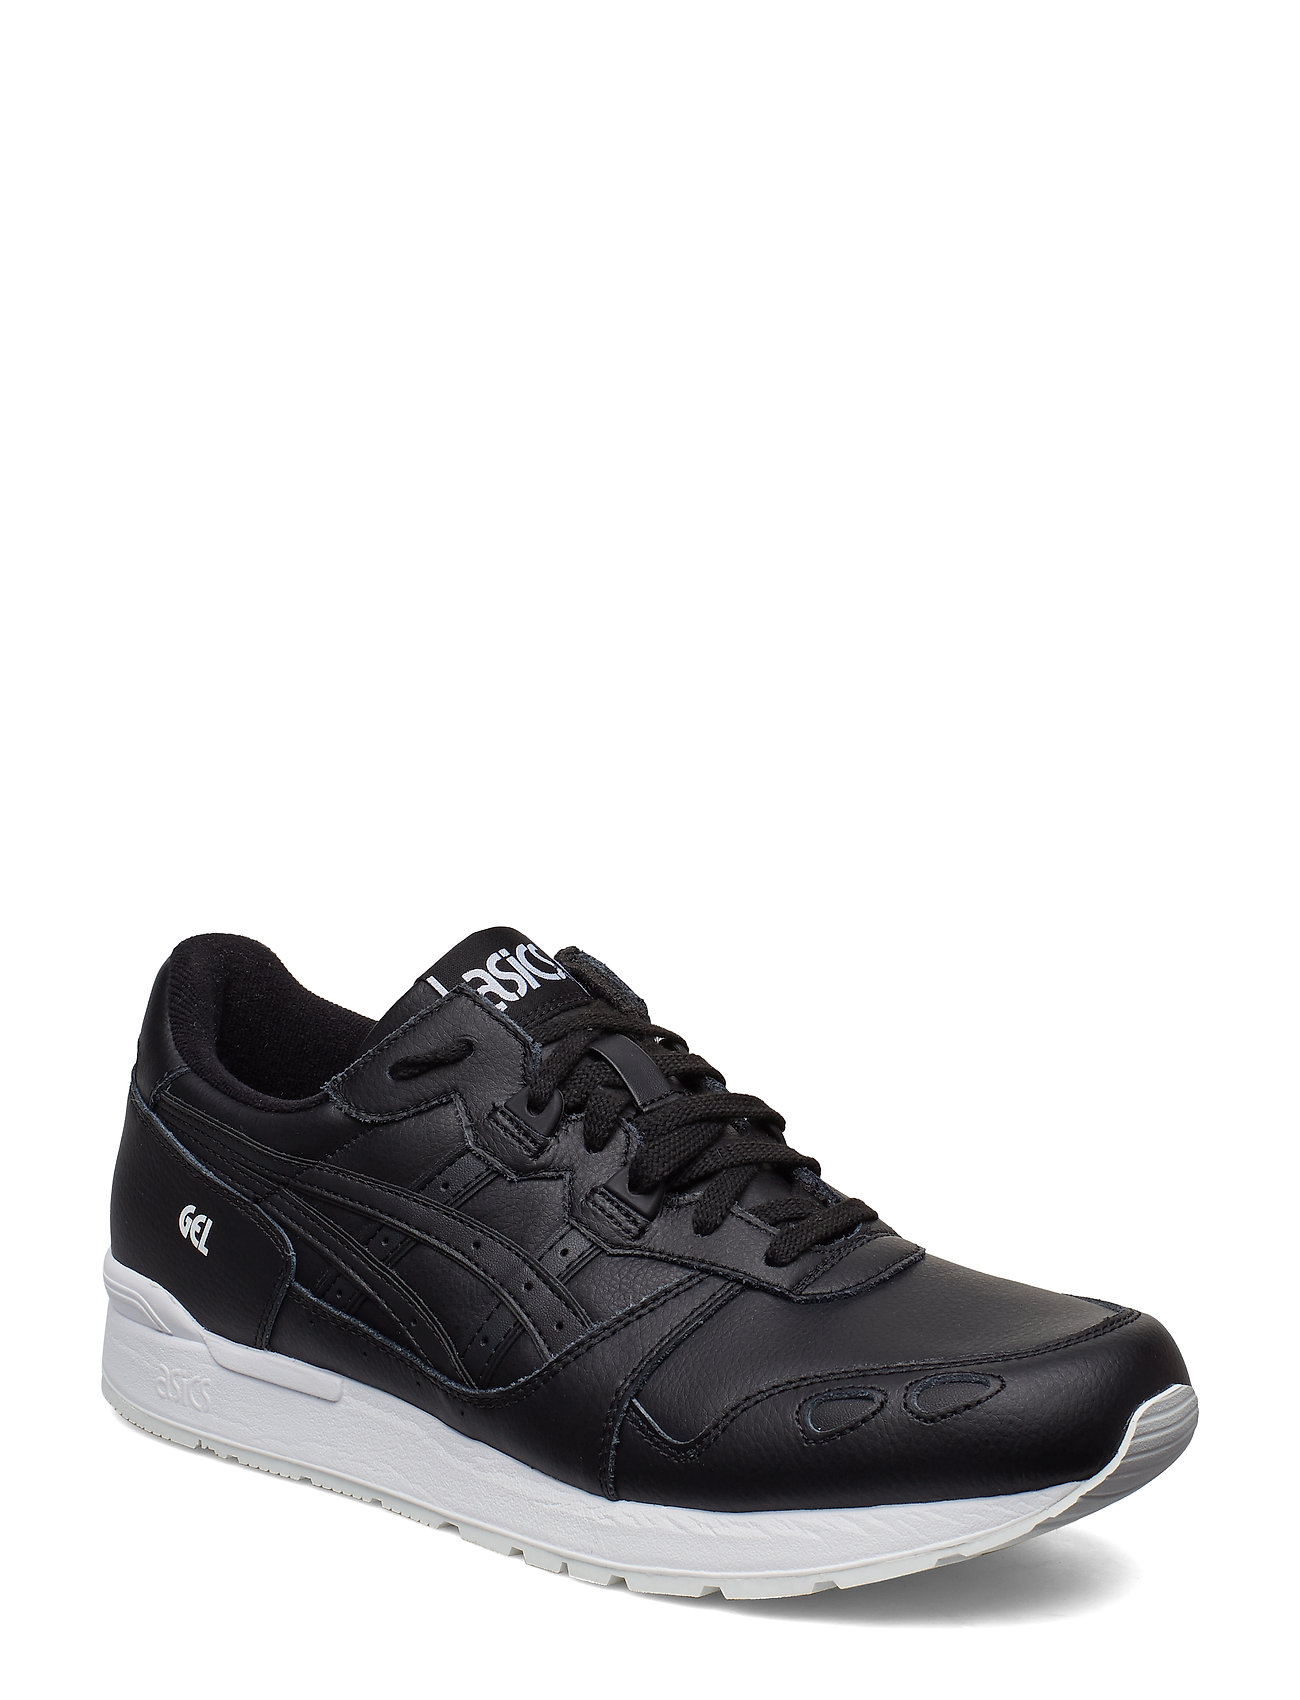 Image of Gel-Lyte Shoes Sport Shoes Training Shoes- Golf/tennis/fitness Sort Asics (3302471887)